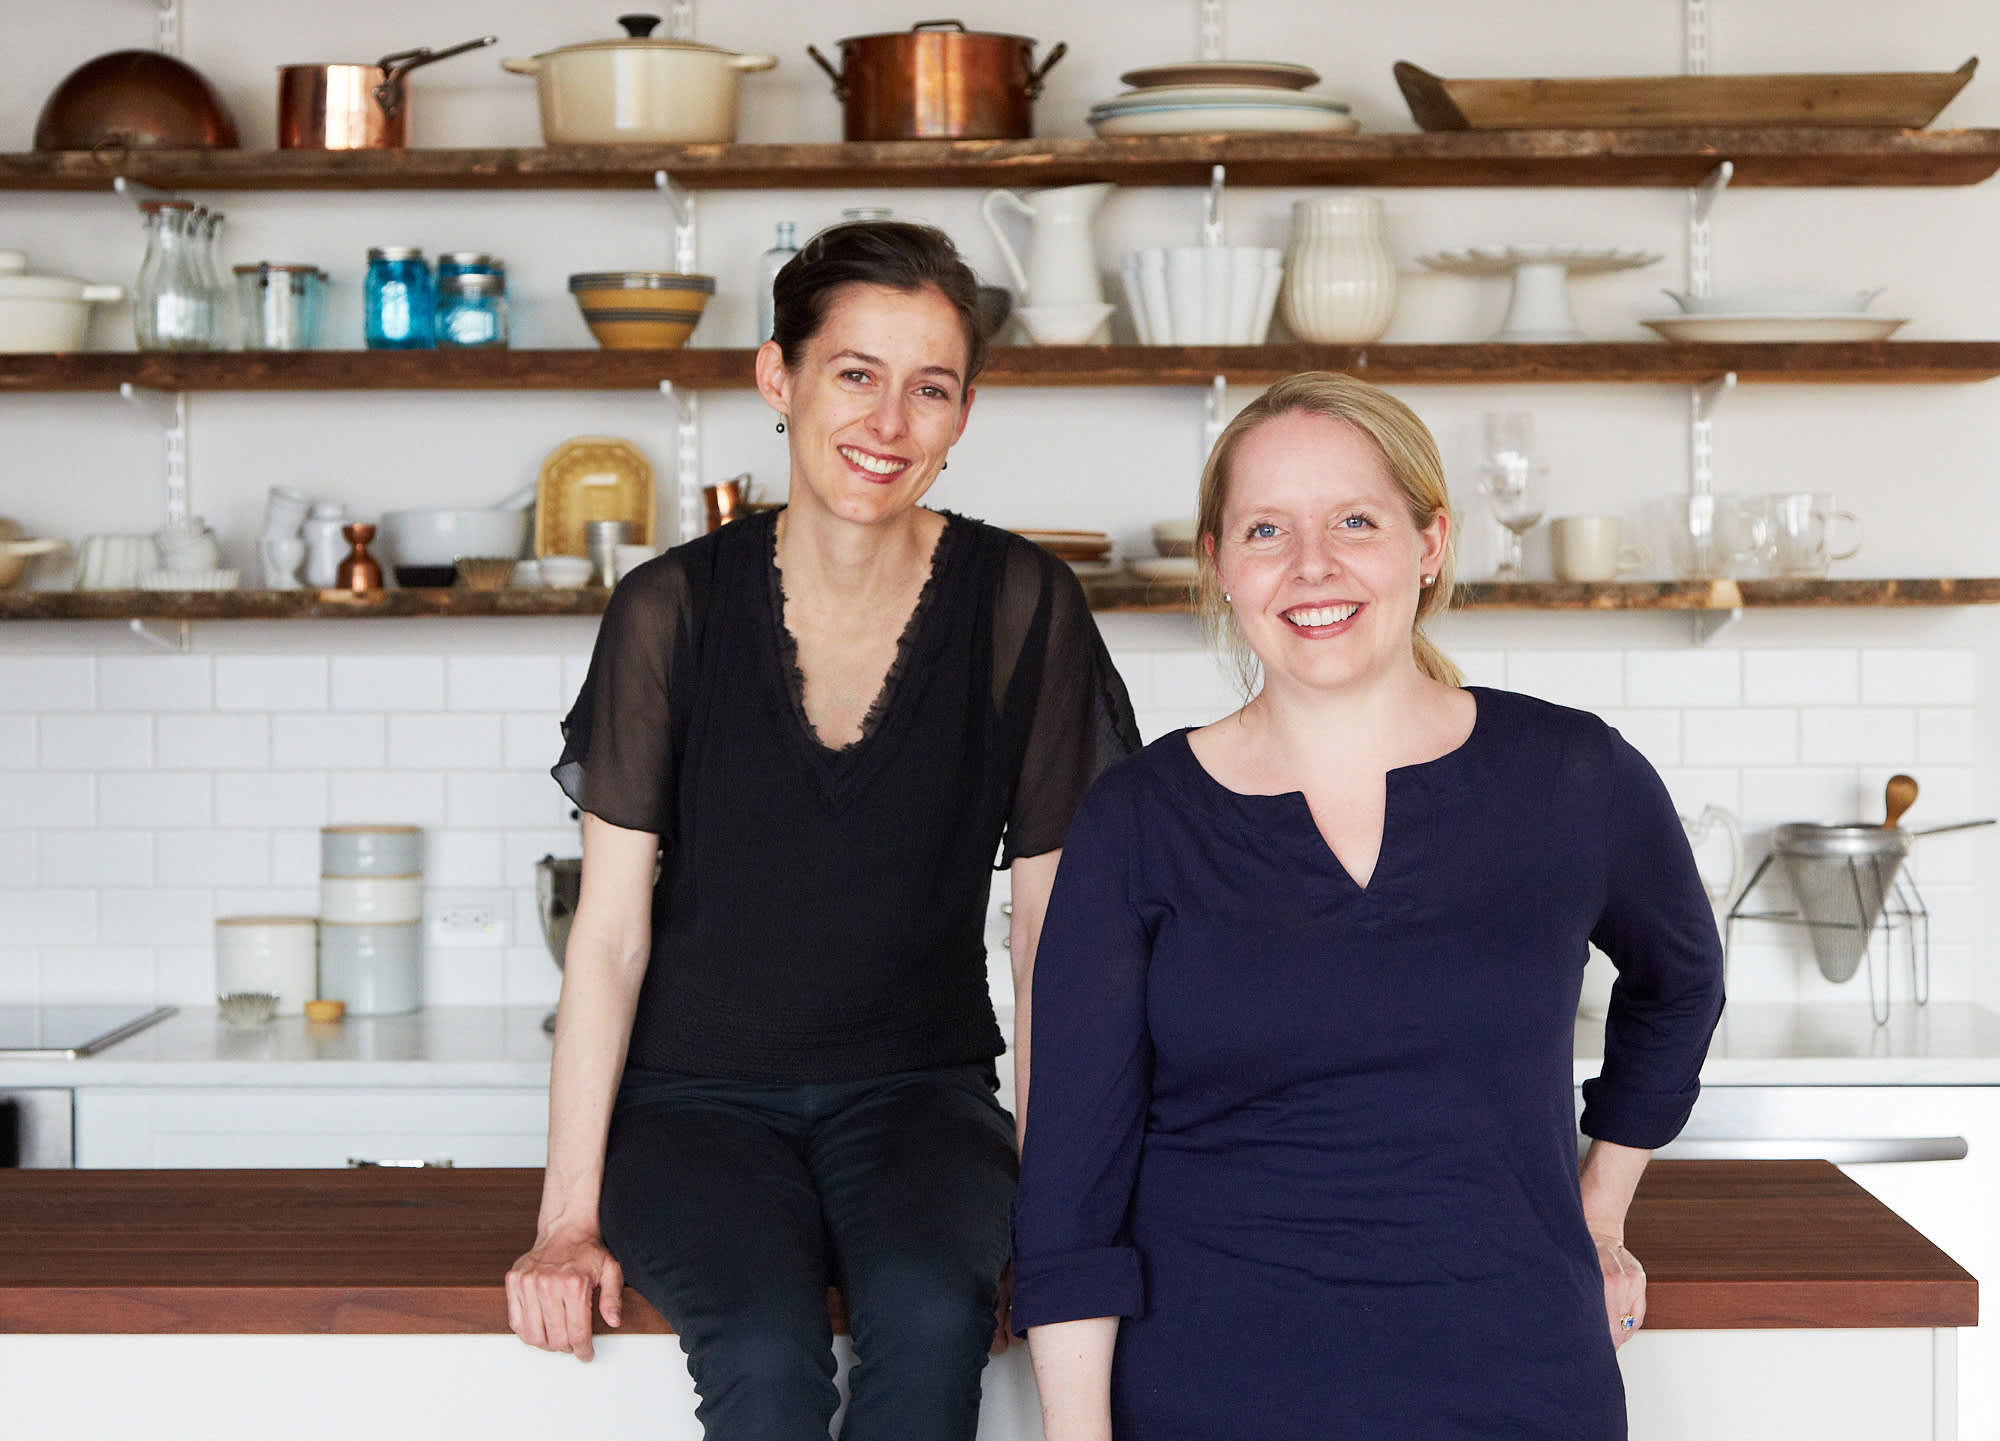 5 Kitchen Questions for Amanda Hesser & Merrill Stubbs of Food52